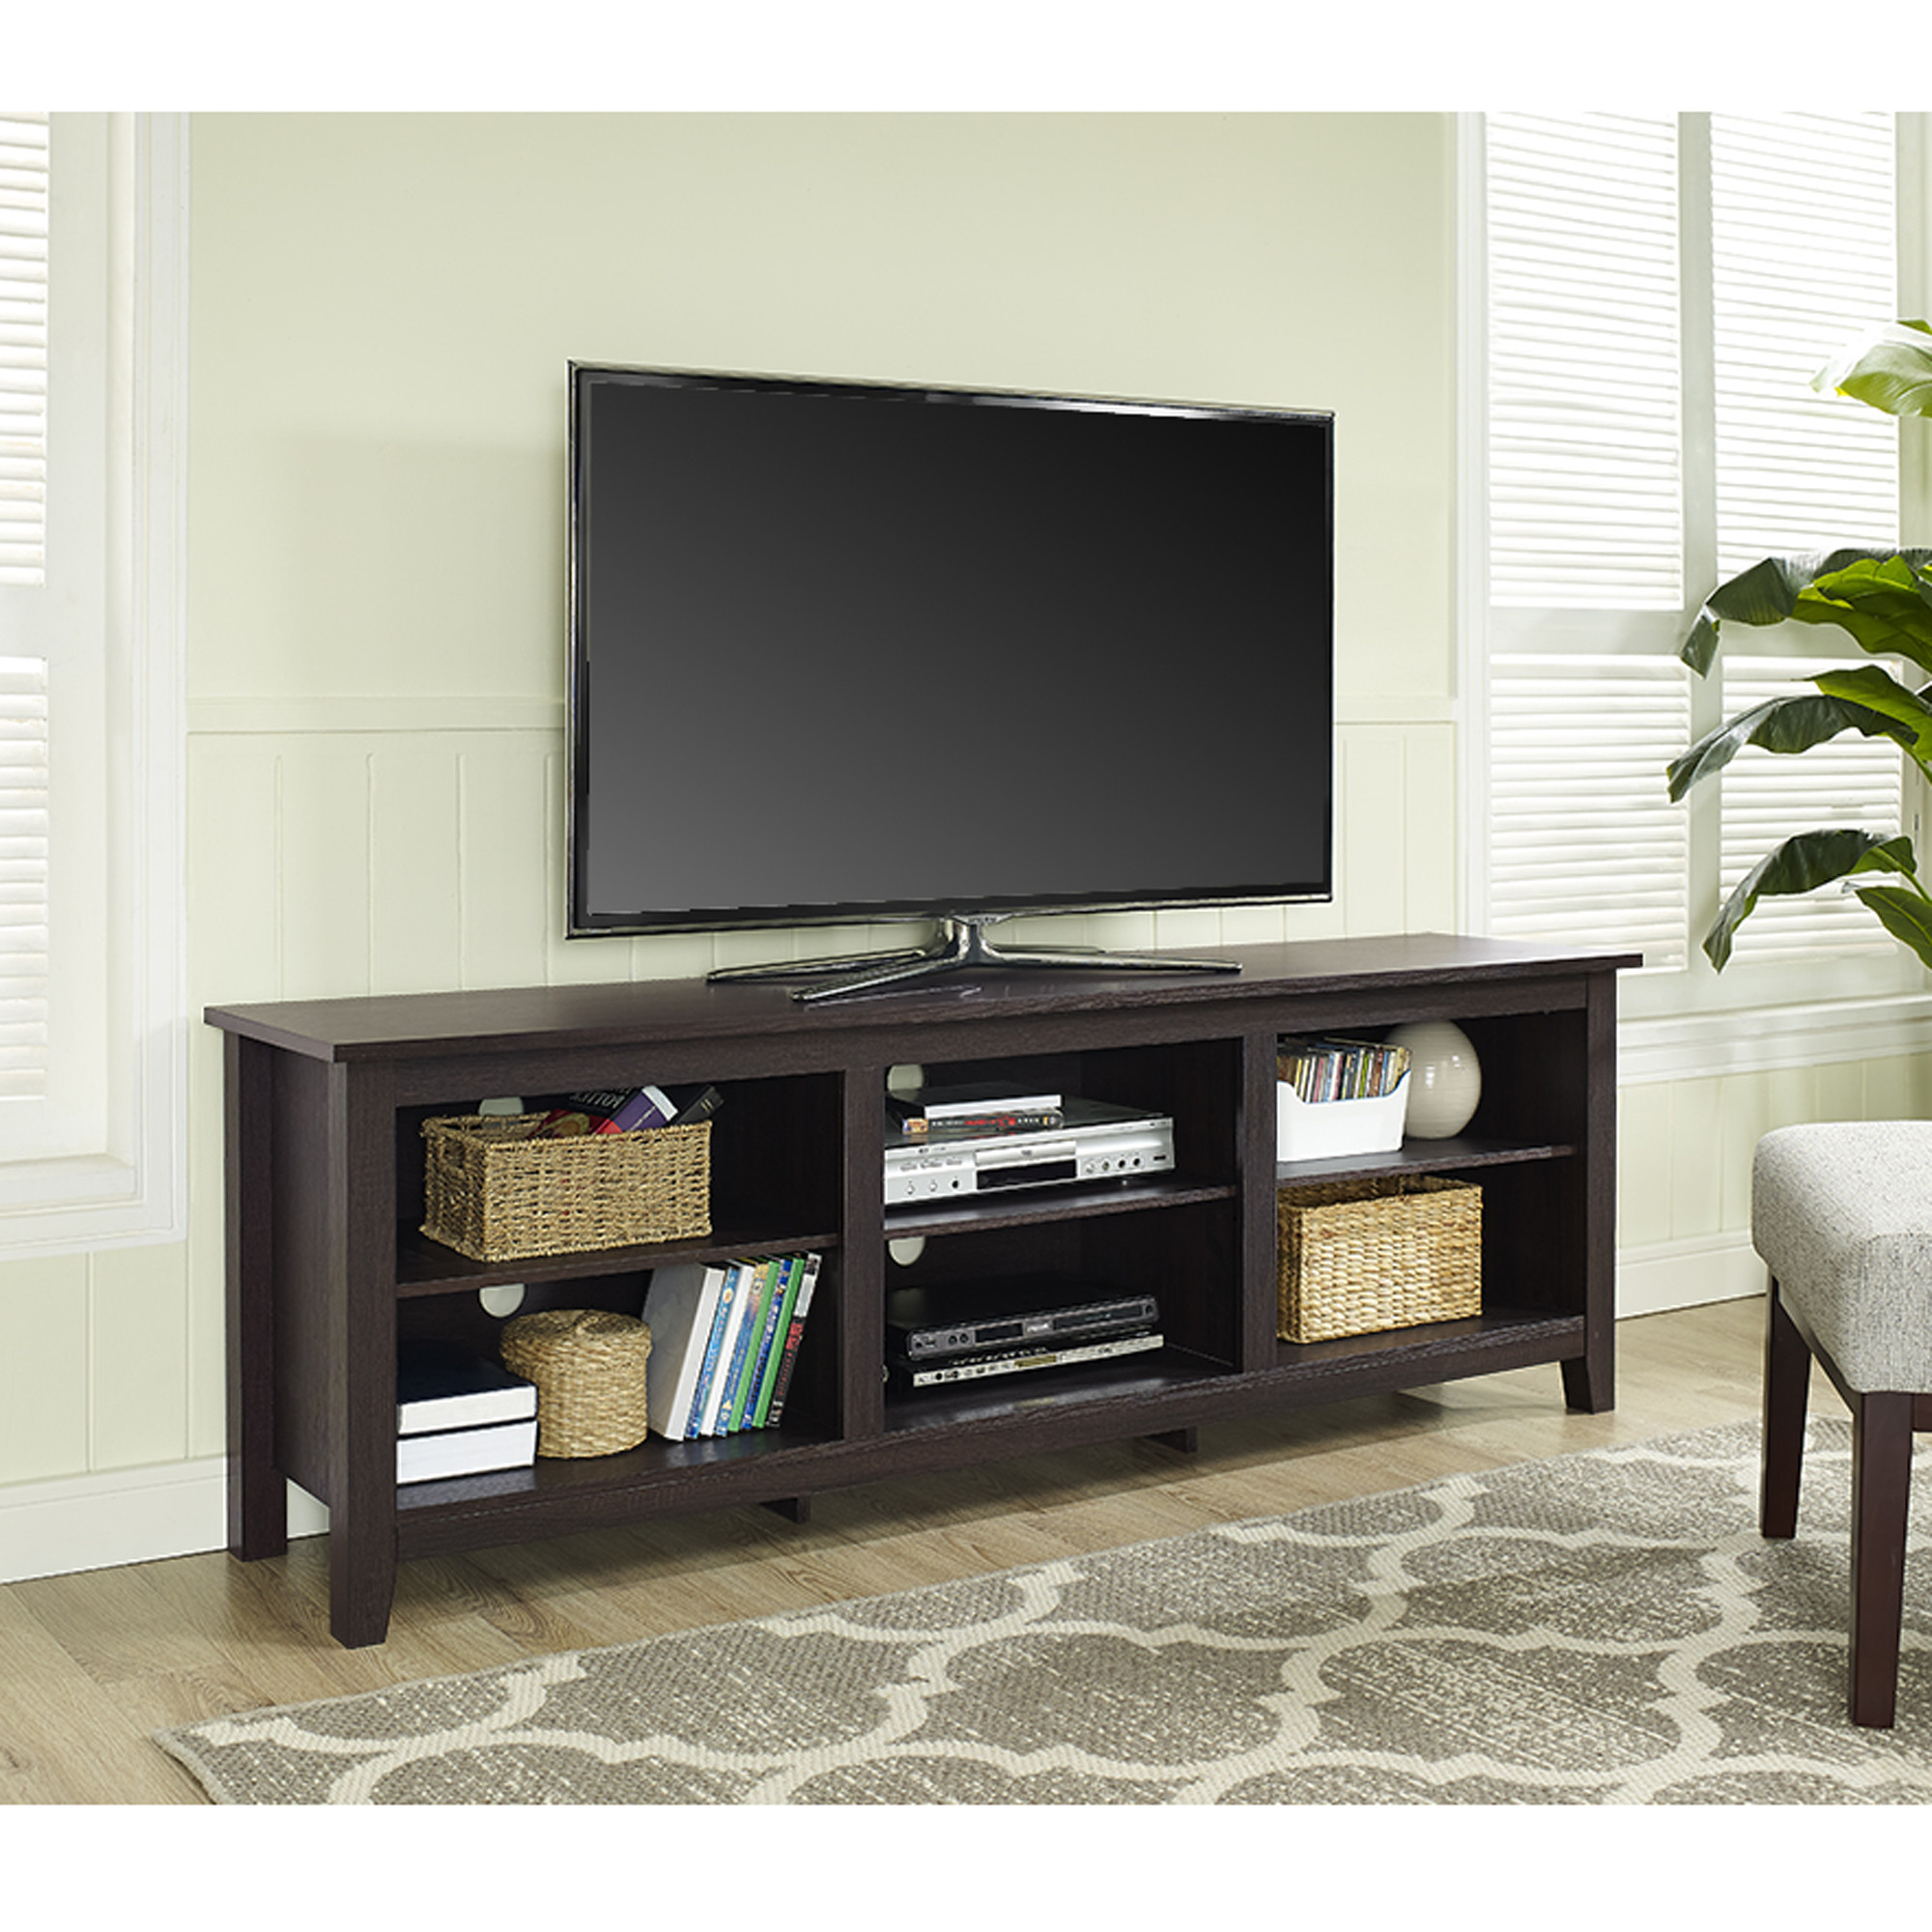 Lovely Wooden Mahogany Cubbies Large And Wide Tv Stand Wooden With Annabelle Cream 70 Inch Tv Stands (View 9 of 20)